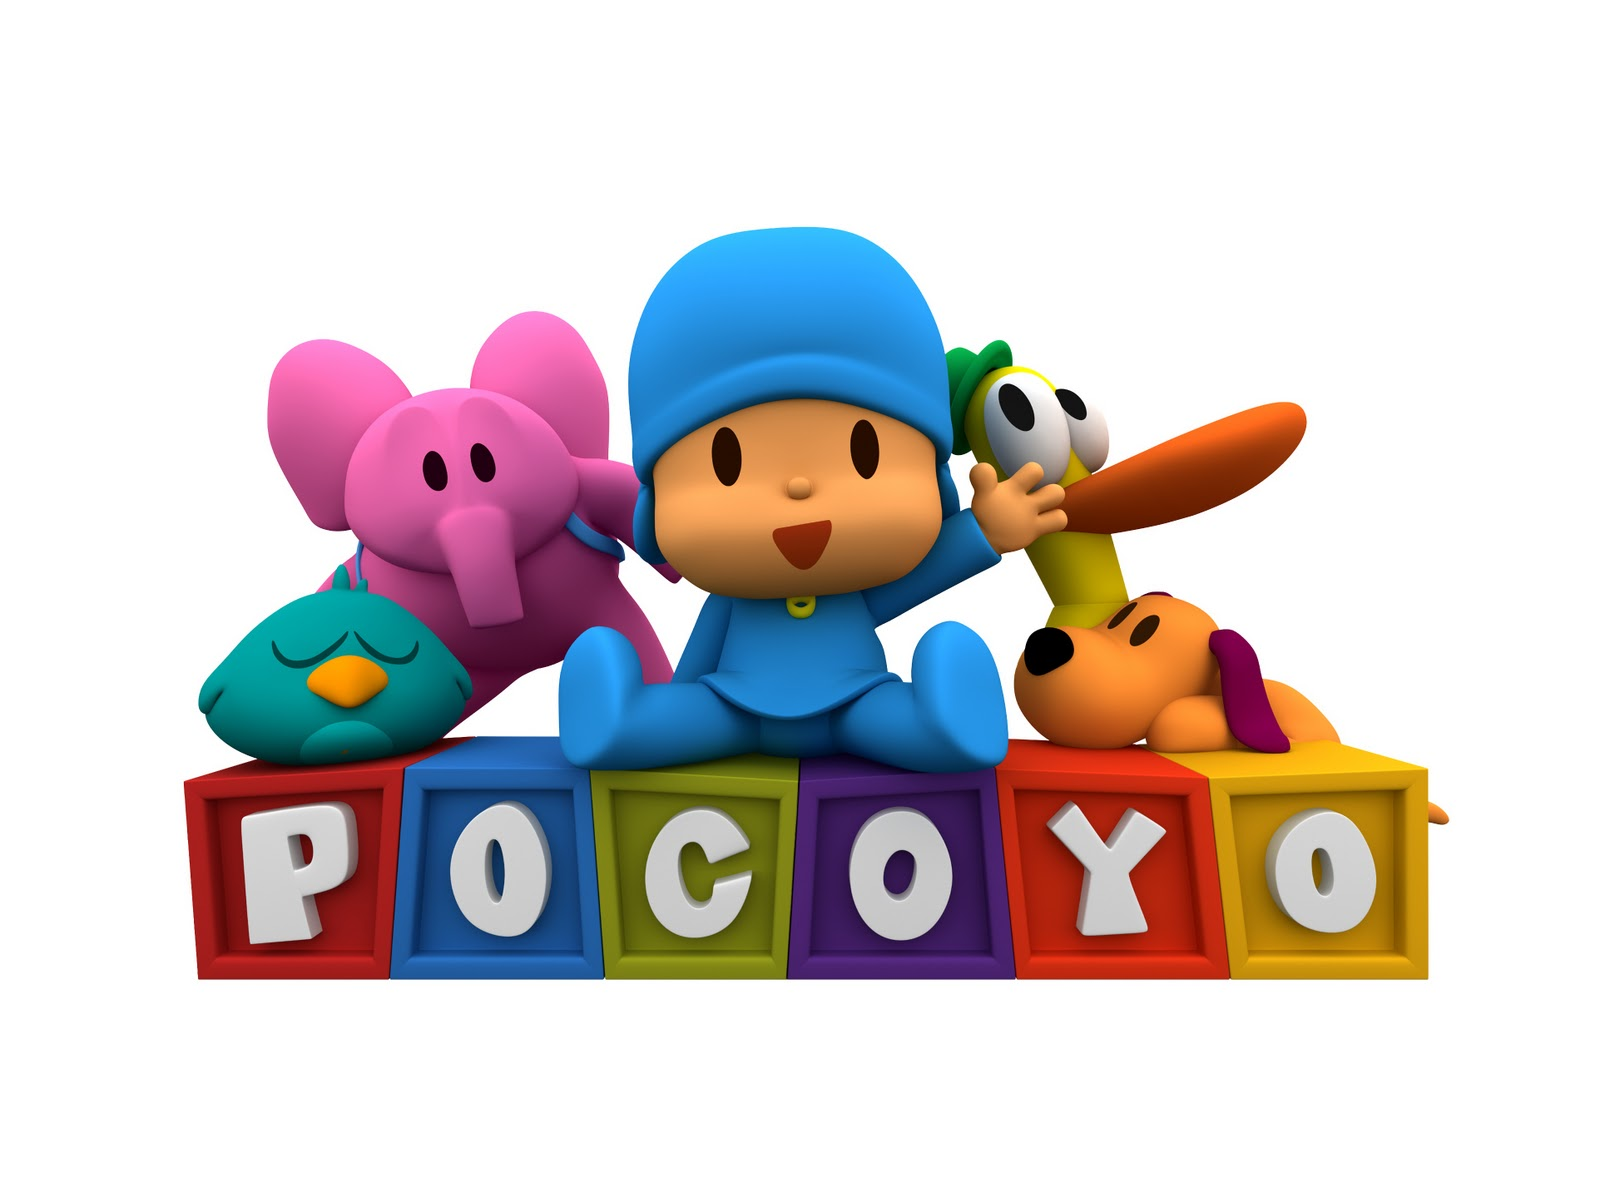 Make Preschool Learning Fun With the new Pocoyo's World DVD from NCircle Entertainment!